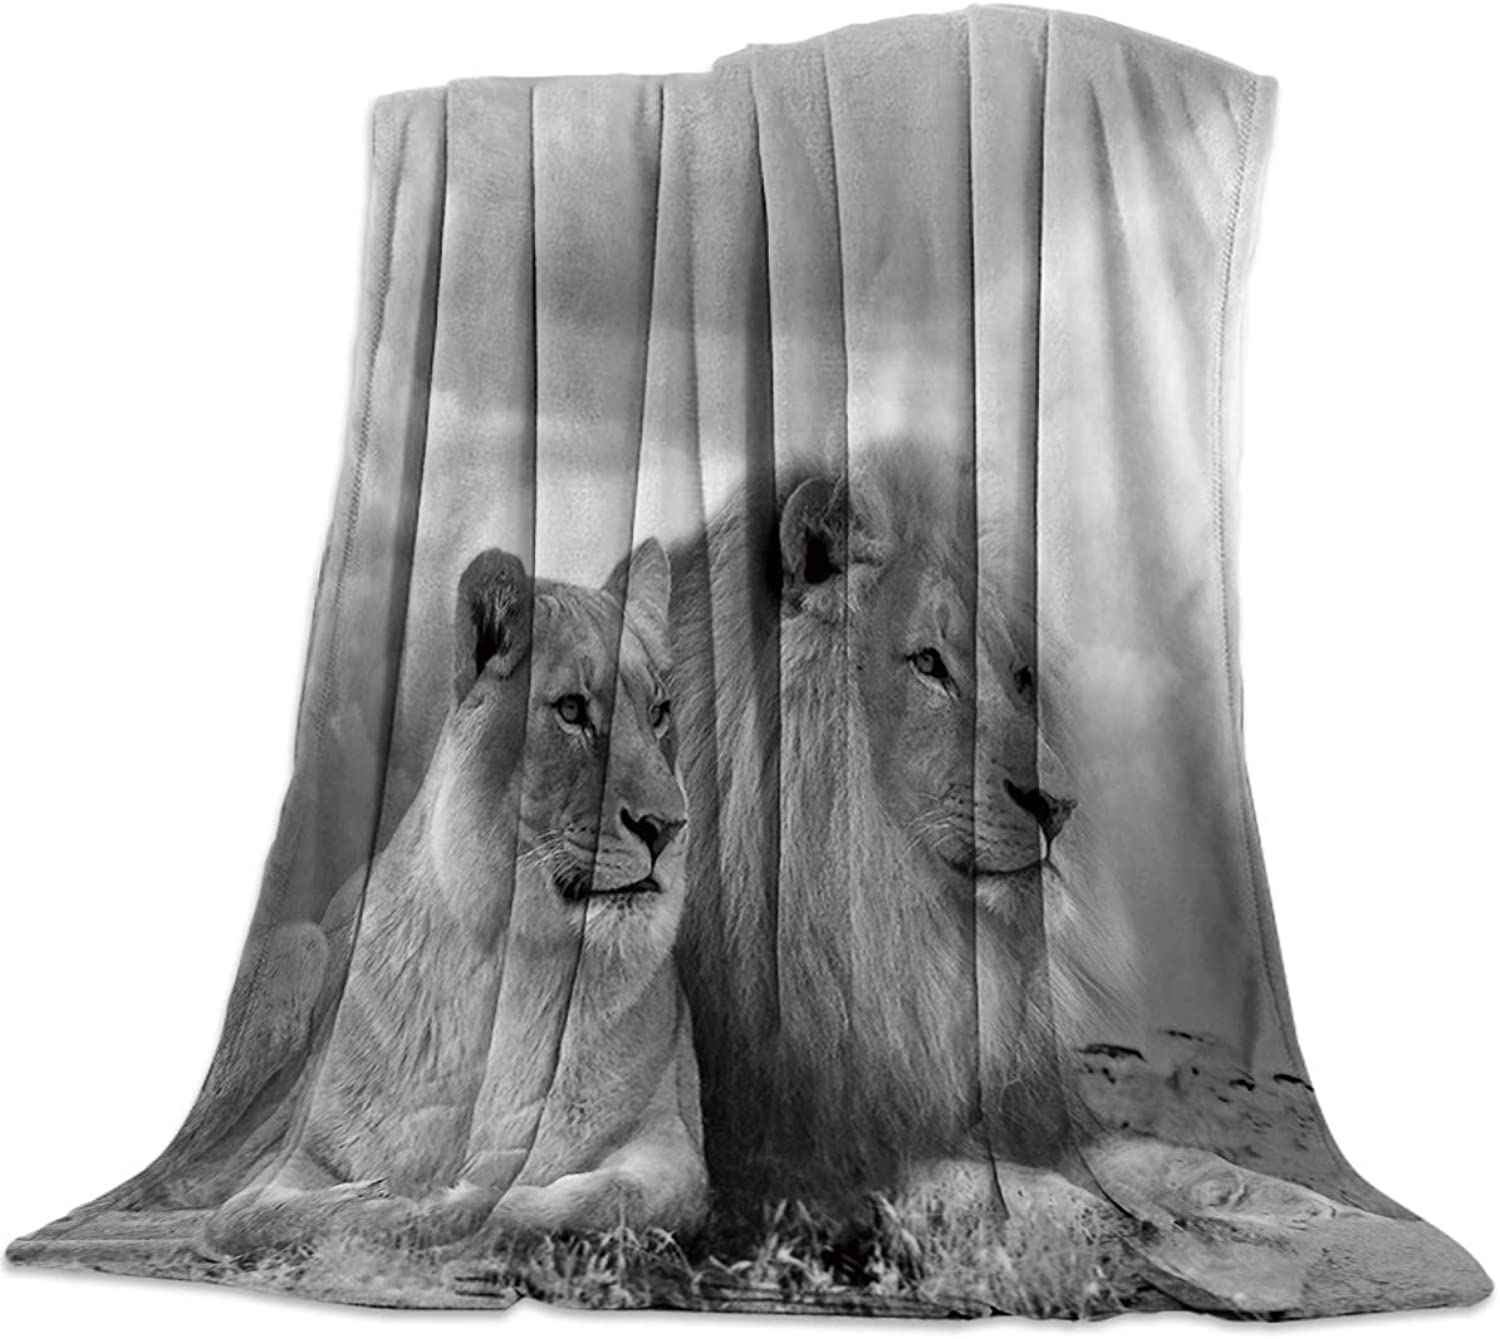 YEHO Art Gallery 49x59 Inch Flannel Fleece Bed Blanket Soft ThrowBlankets for Girls Boys,Retro 3D Lions Animal Pattern,Cozy Lightweight Blankets for Bedroom Living Room Sofa Couch